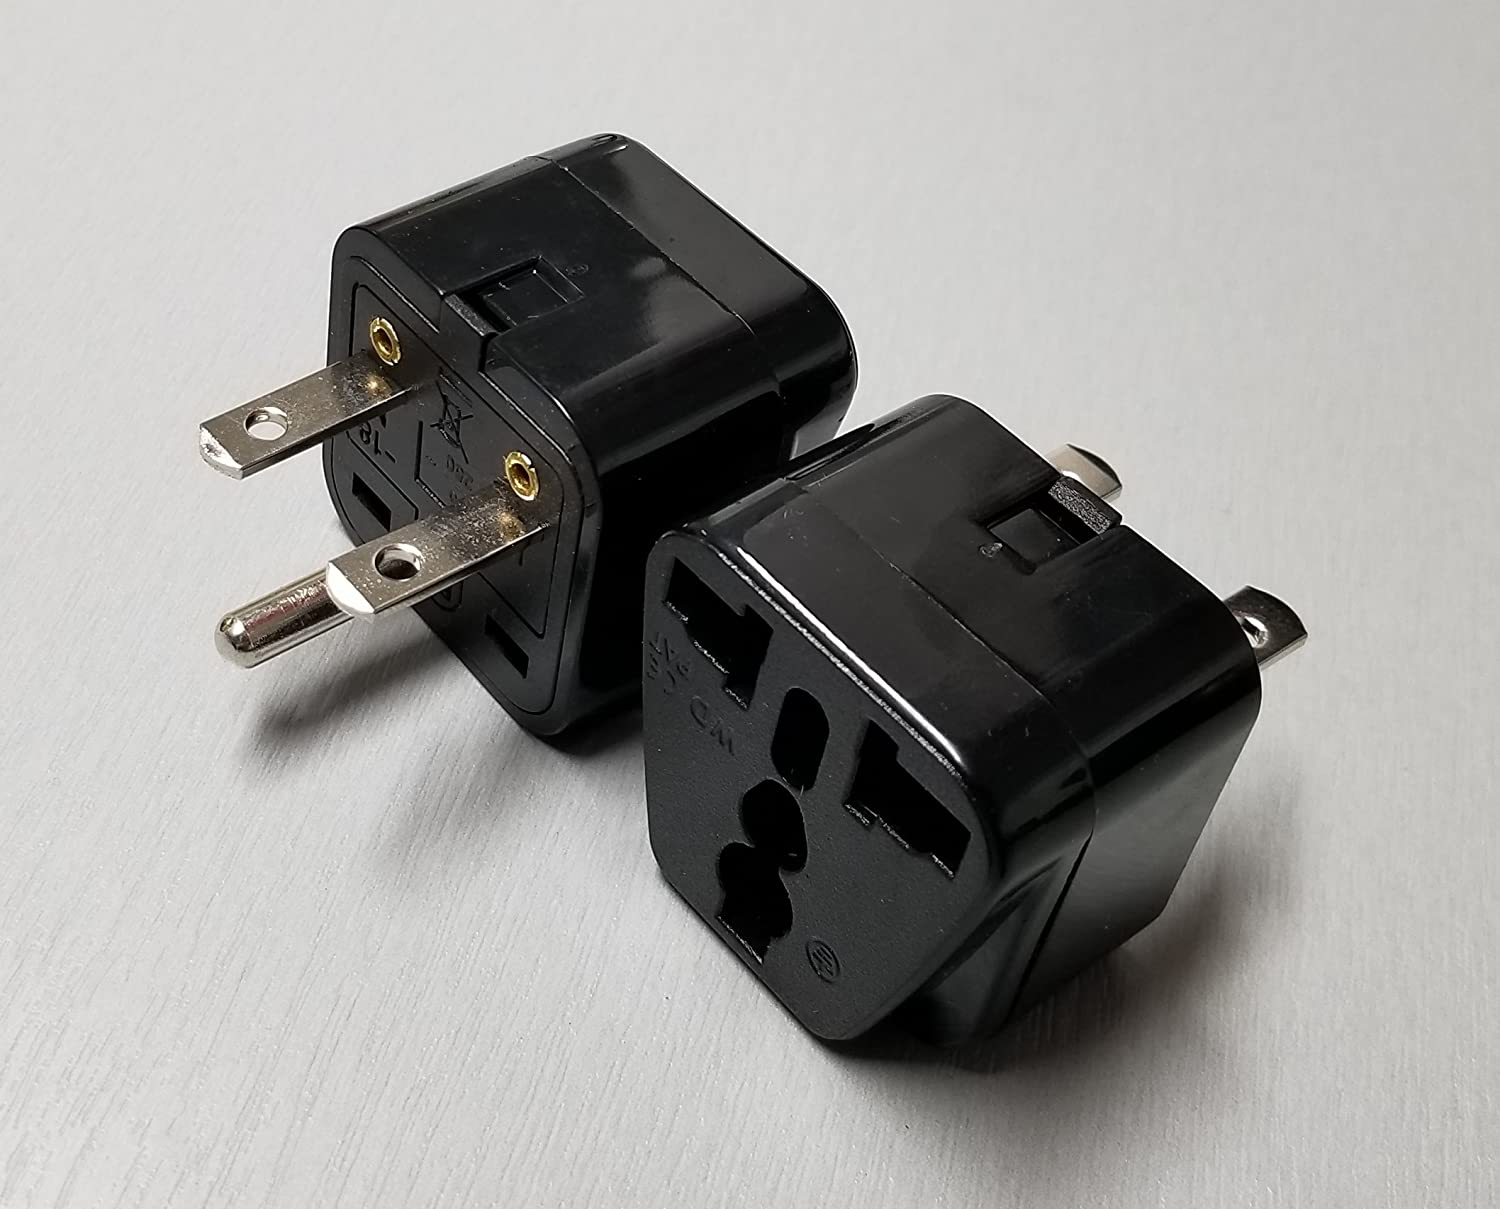 Universal Plug Adapter Nema 6 15p 208 220 230 240 Maximum Number Of Receptacles On 15 Amp Circuit Electrical Diy Volt Amps Max Black 1 Pack Home Audio Theater